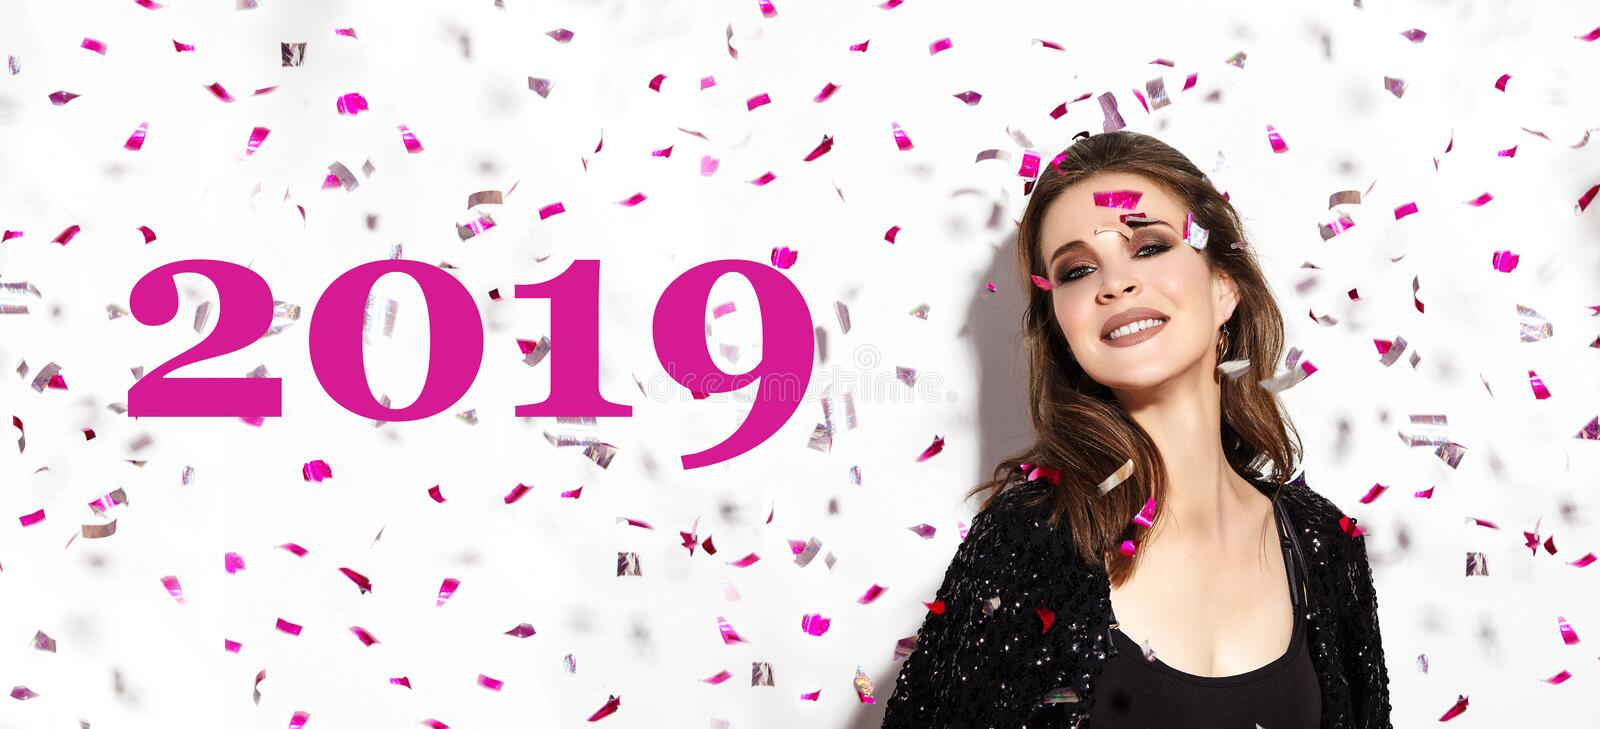 Christmas Party Time. Beautiful Happy Woman Smile. Style in Confetti. New Year 2019 Celebrate Look with Fashion Make-up royalty free stock photos